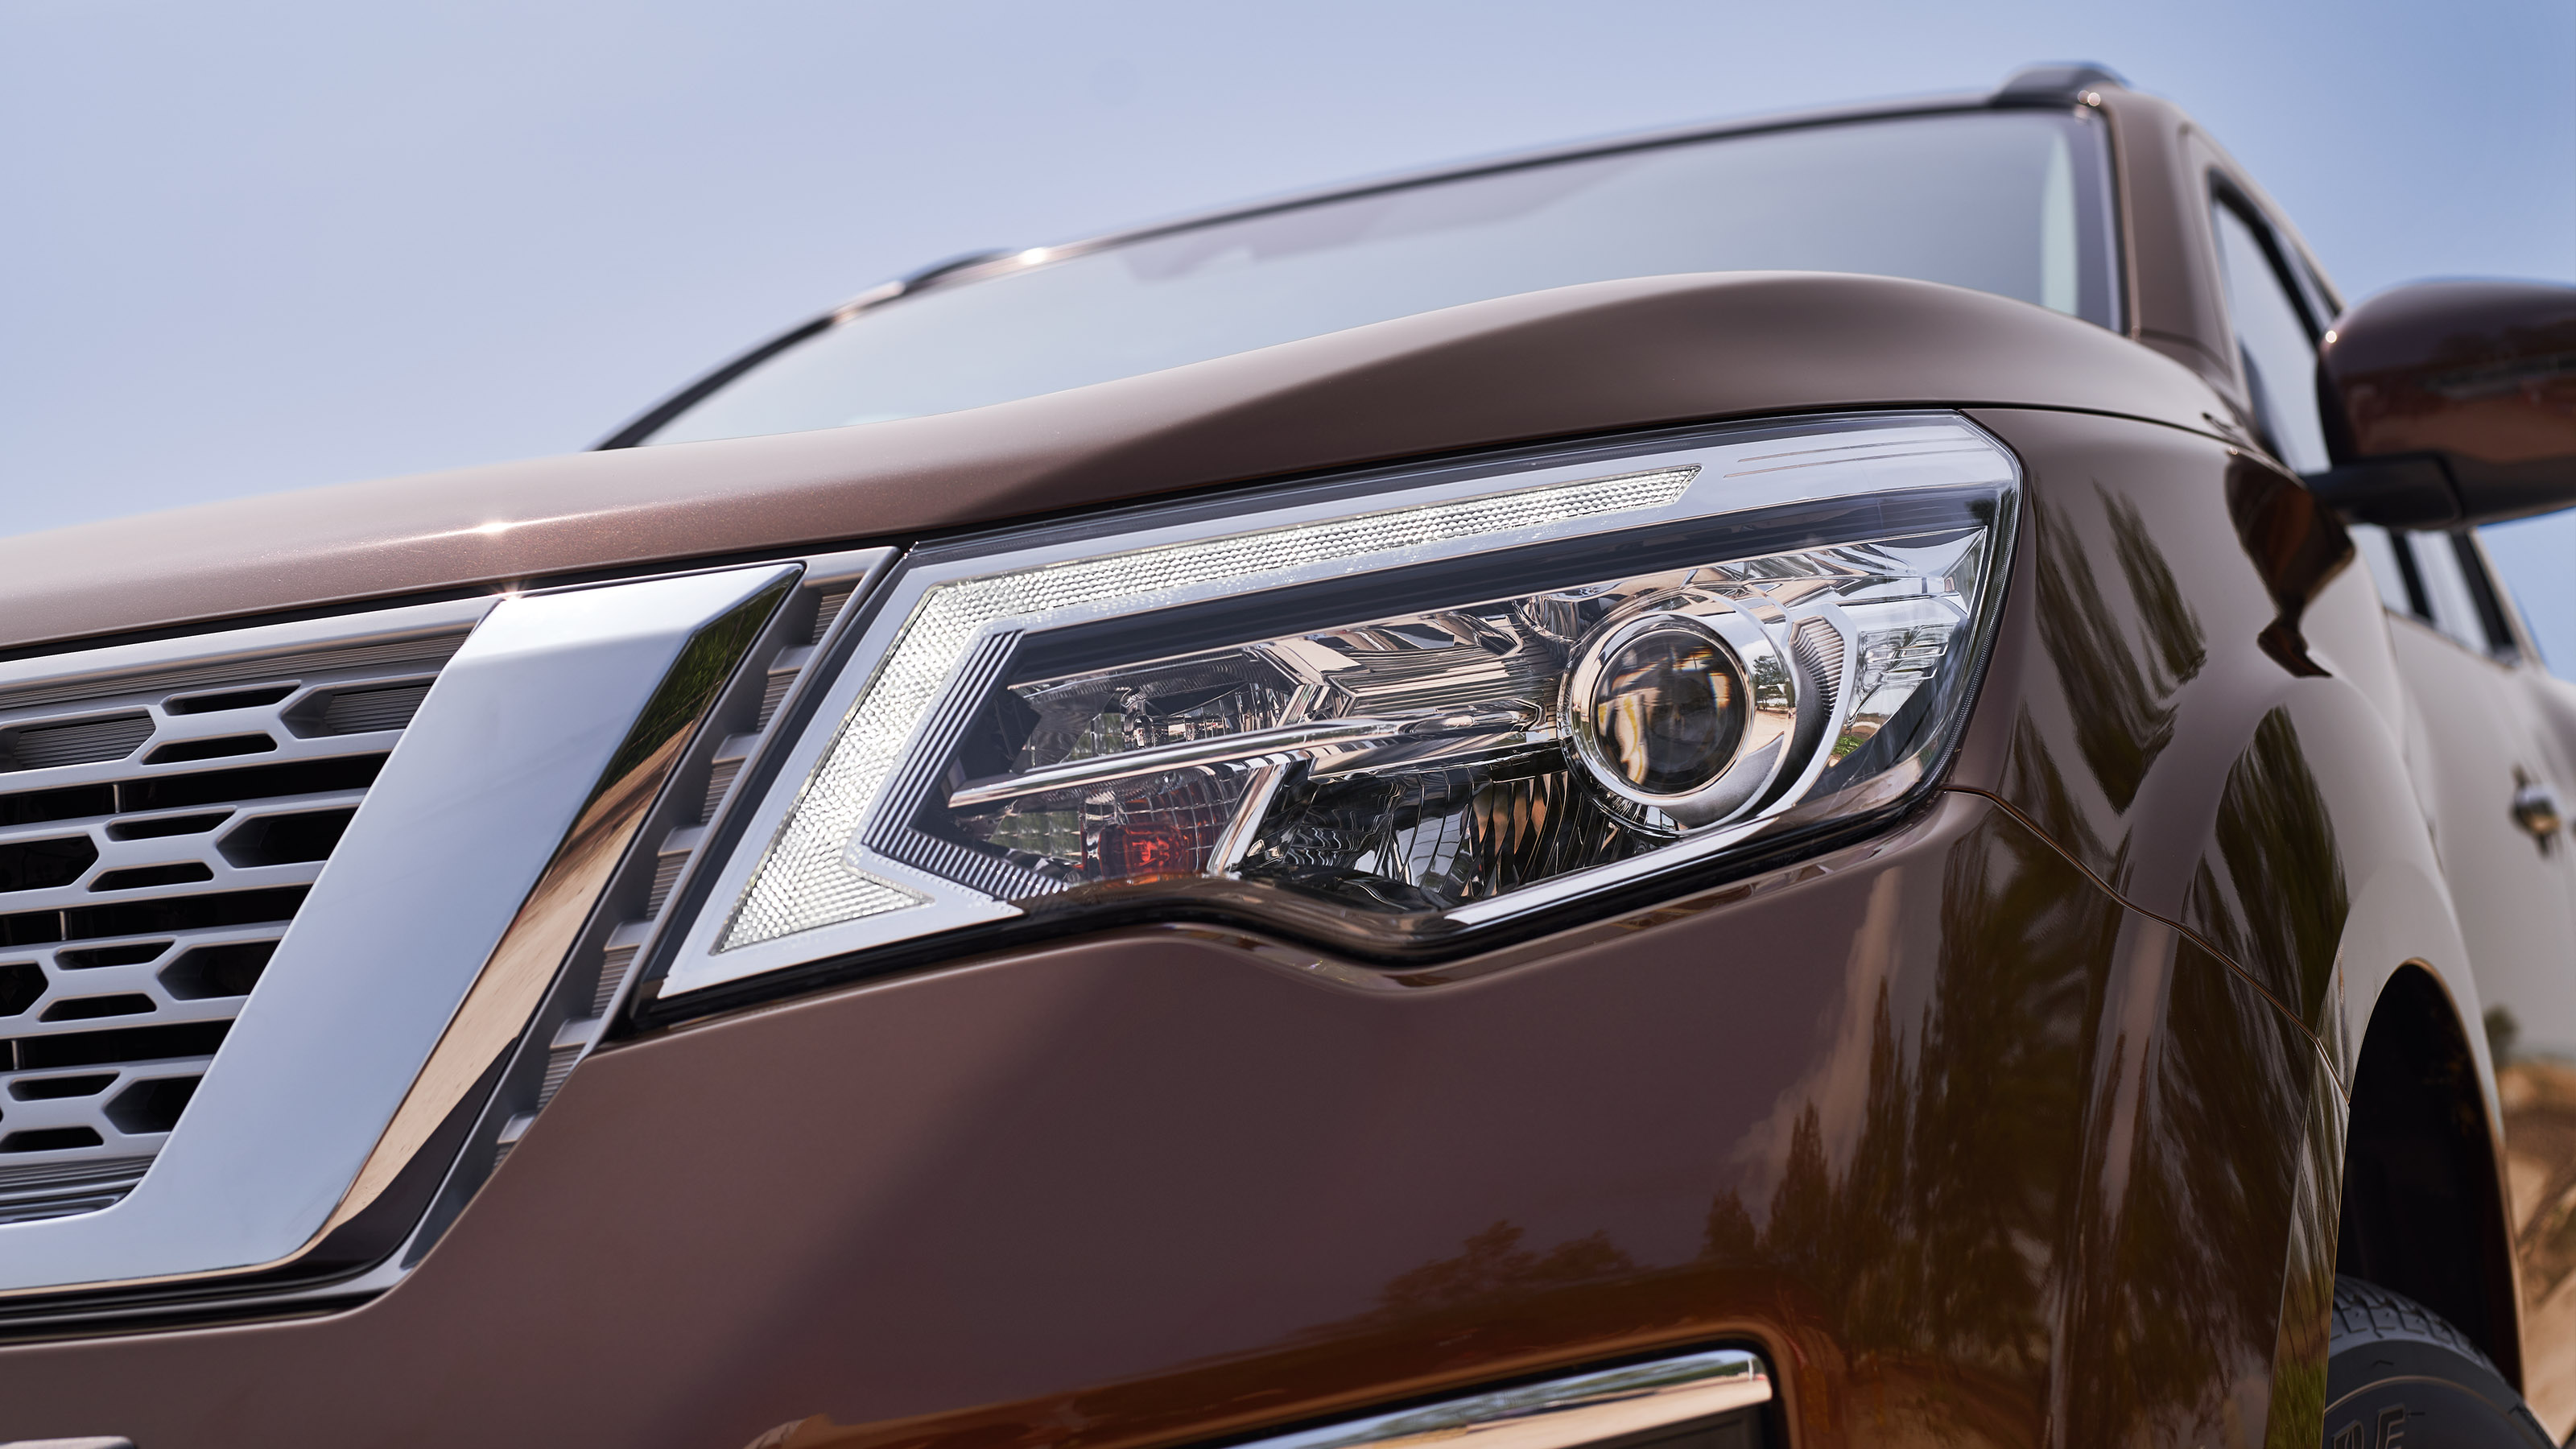 Nissan Terra LED headlamps